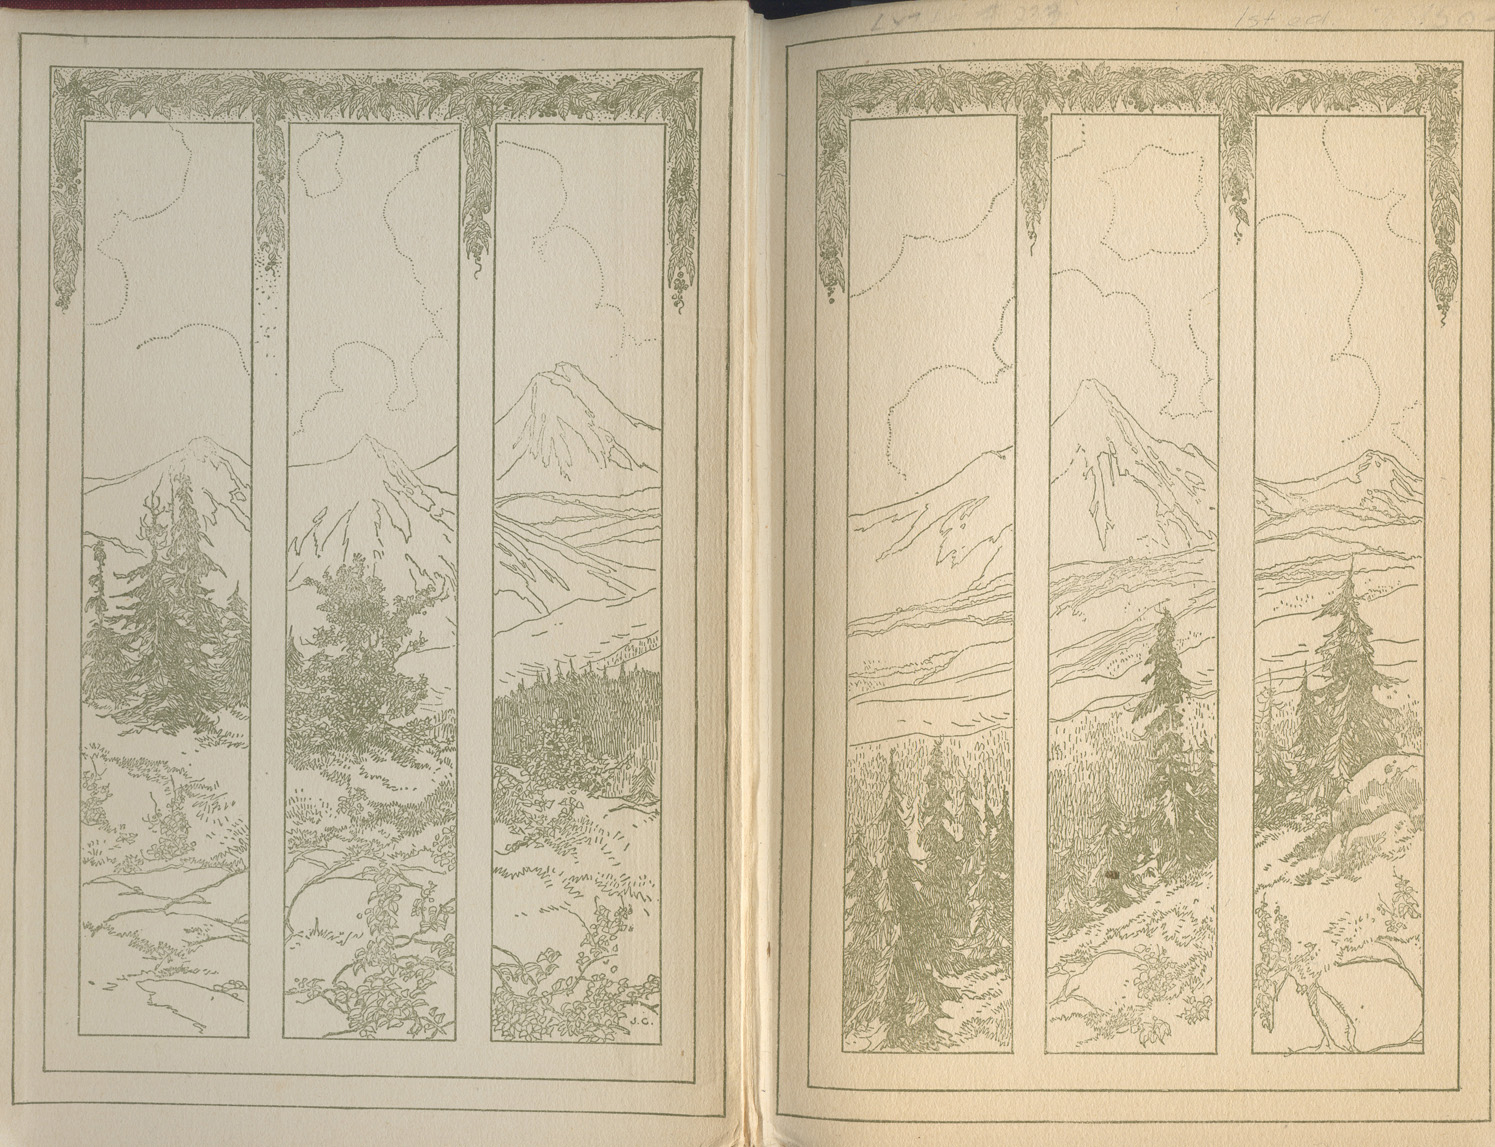 Endpages depicting the forest and mountains around the mining camp.